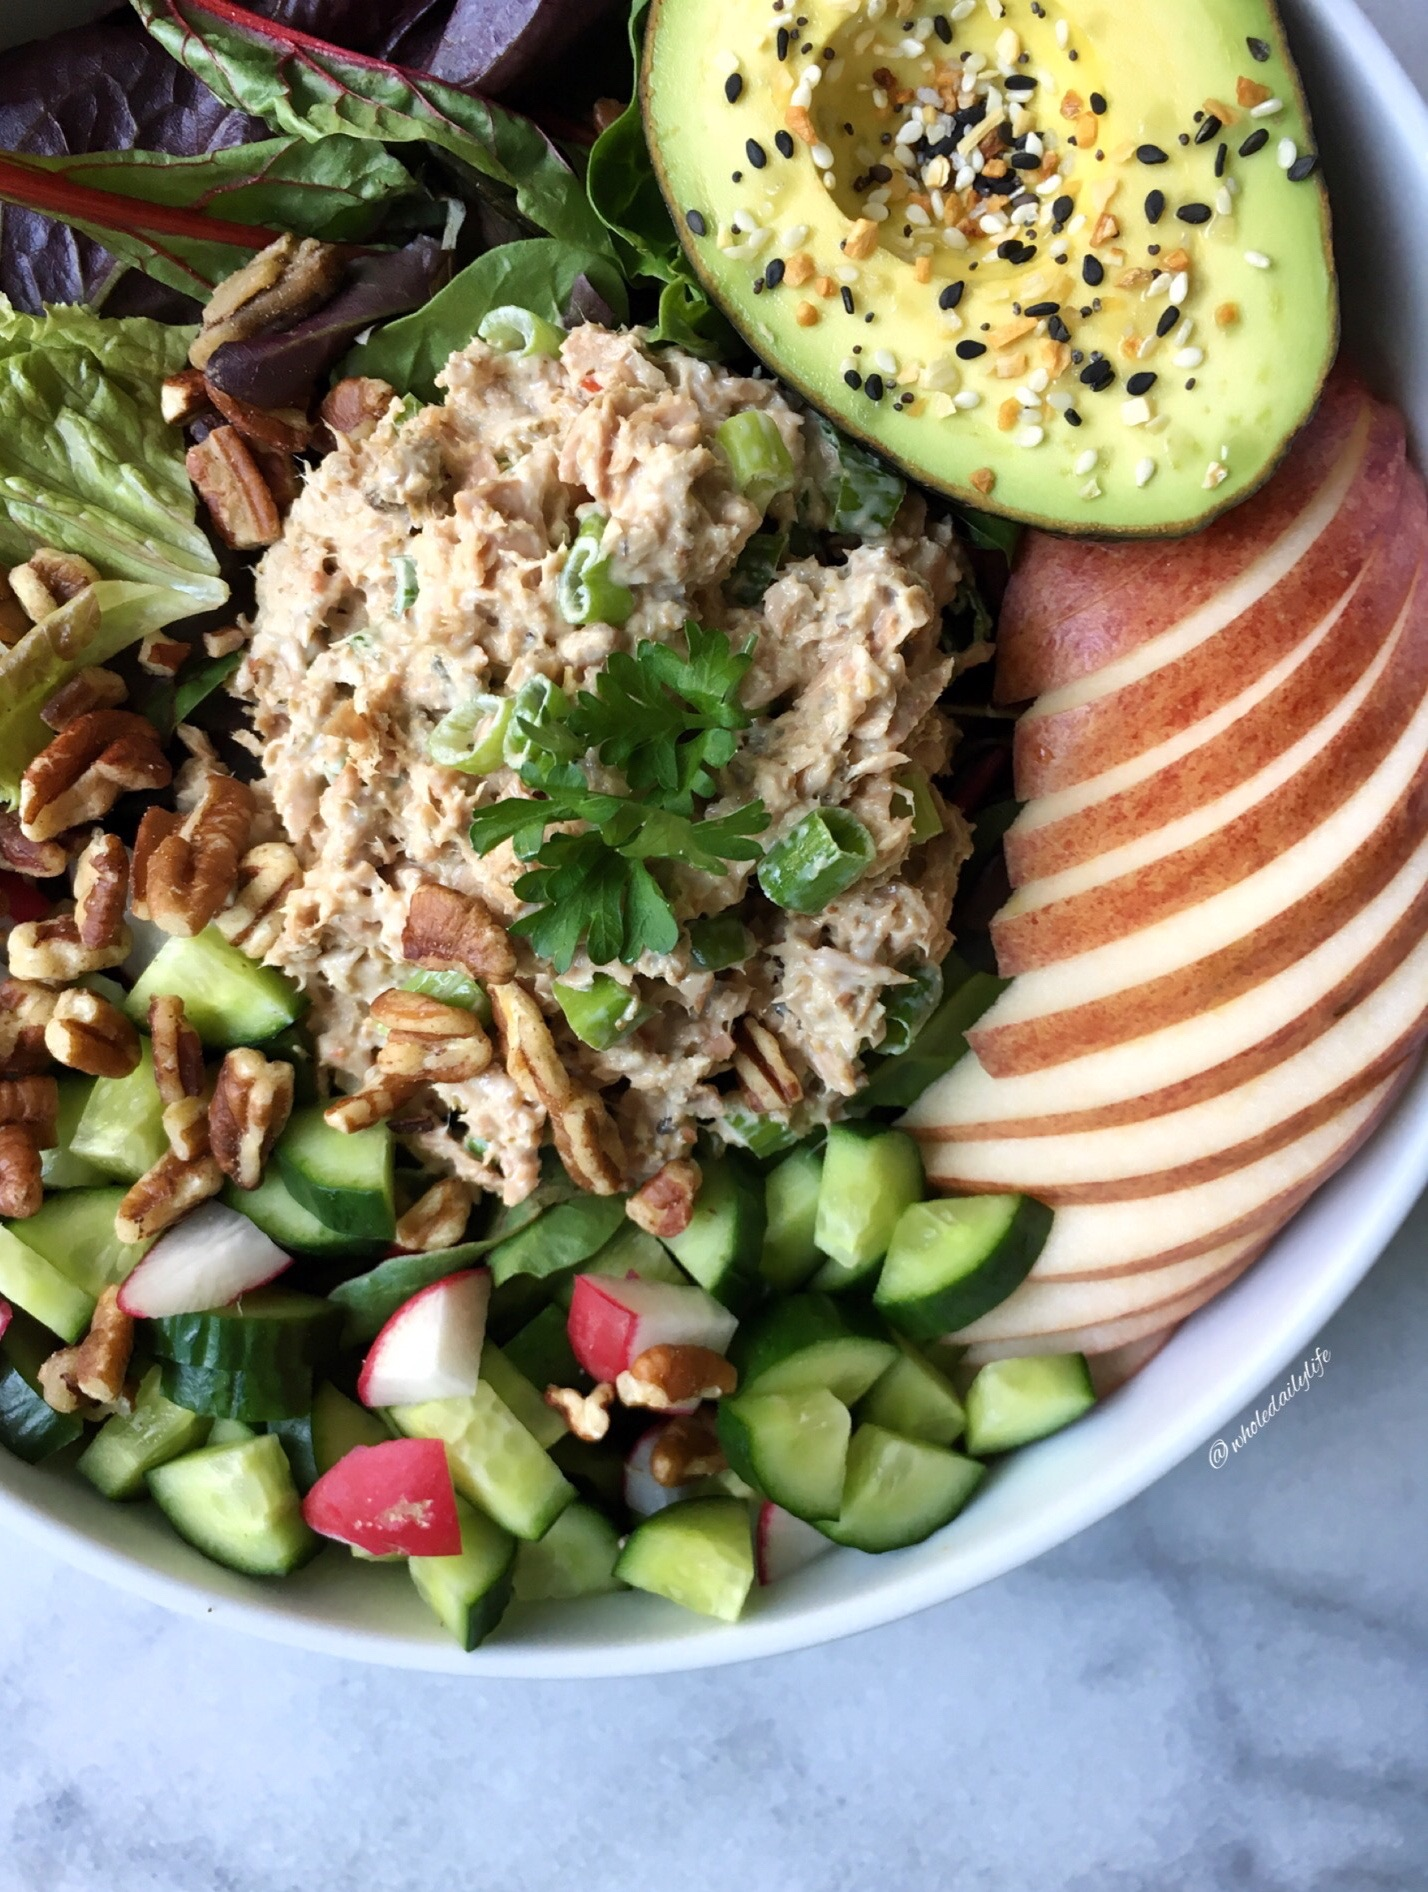 Garlic Herb Seasoned Tuna with Primal Kitchens Original Mayo, Green Onions, and Pecans